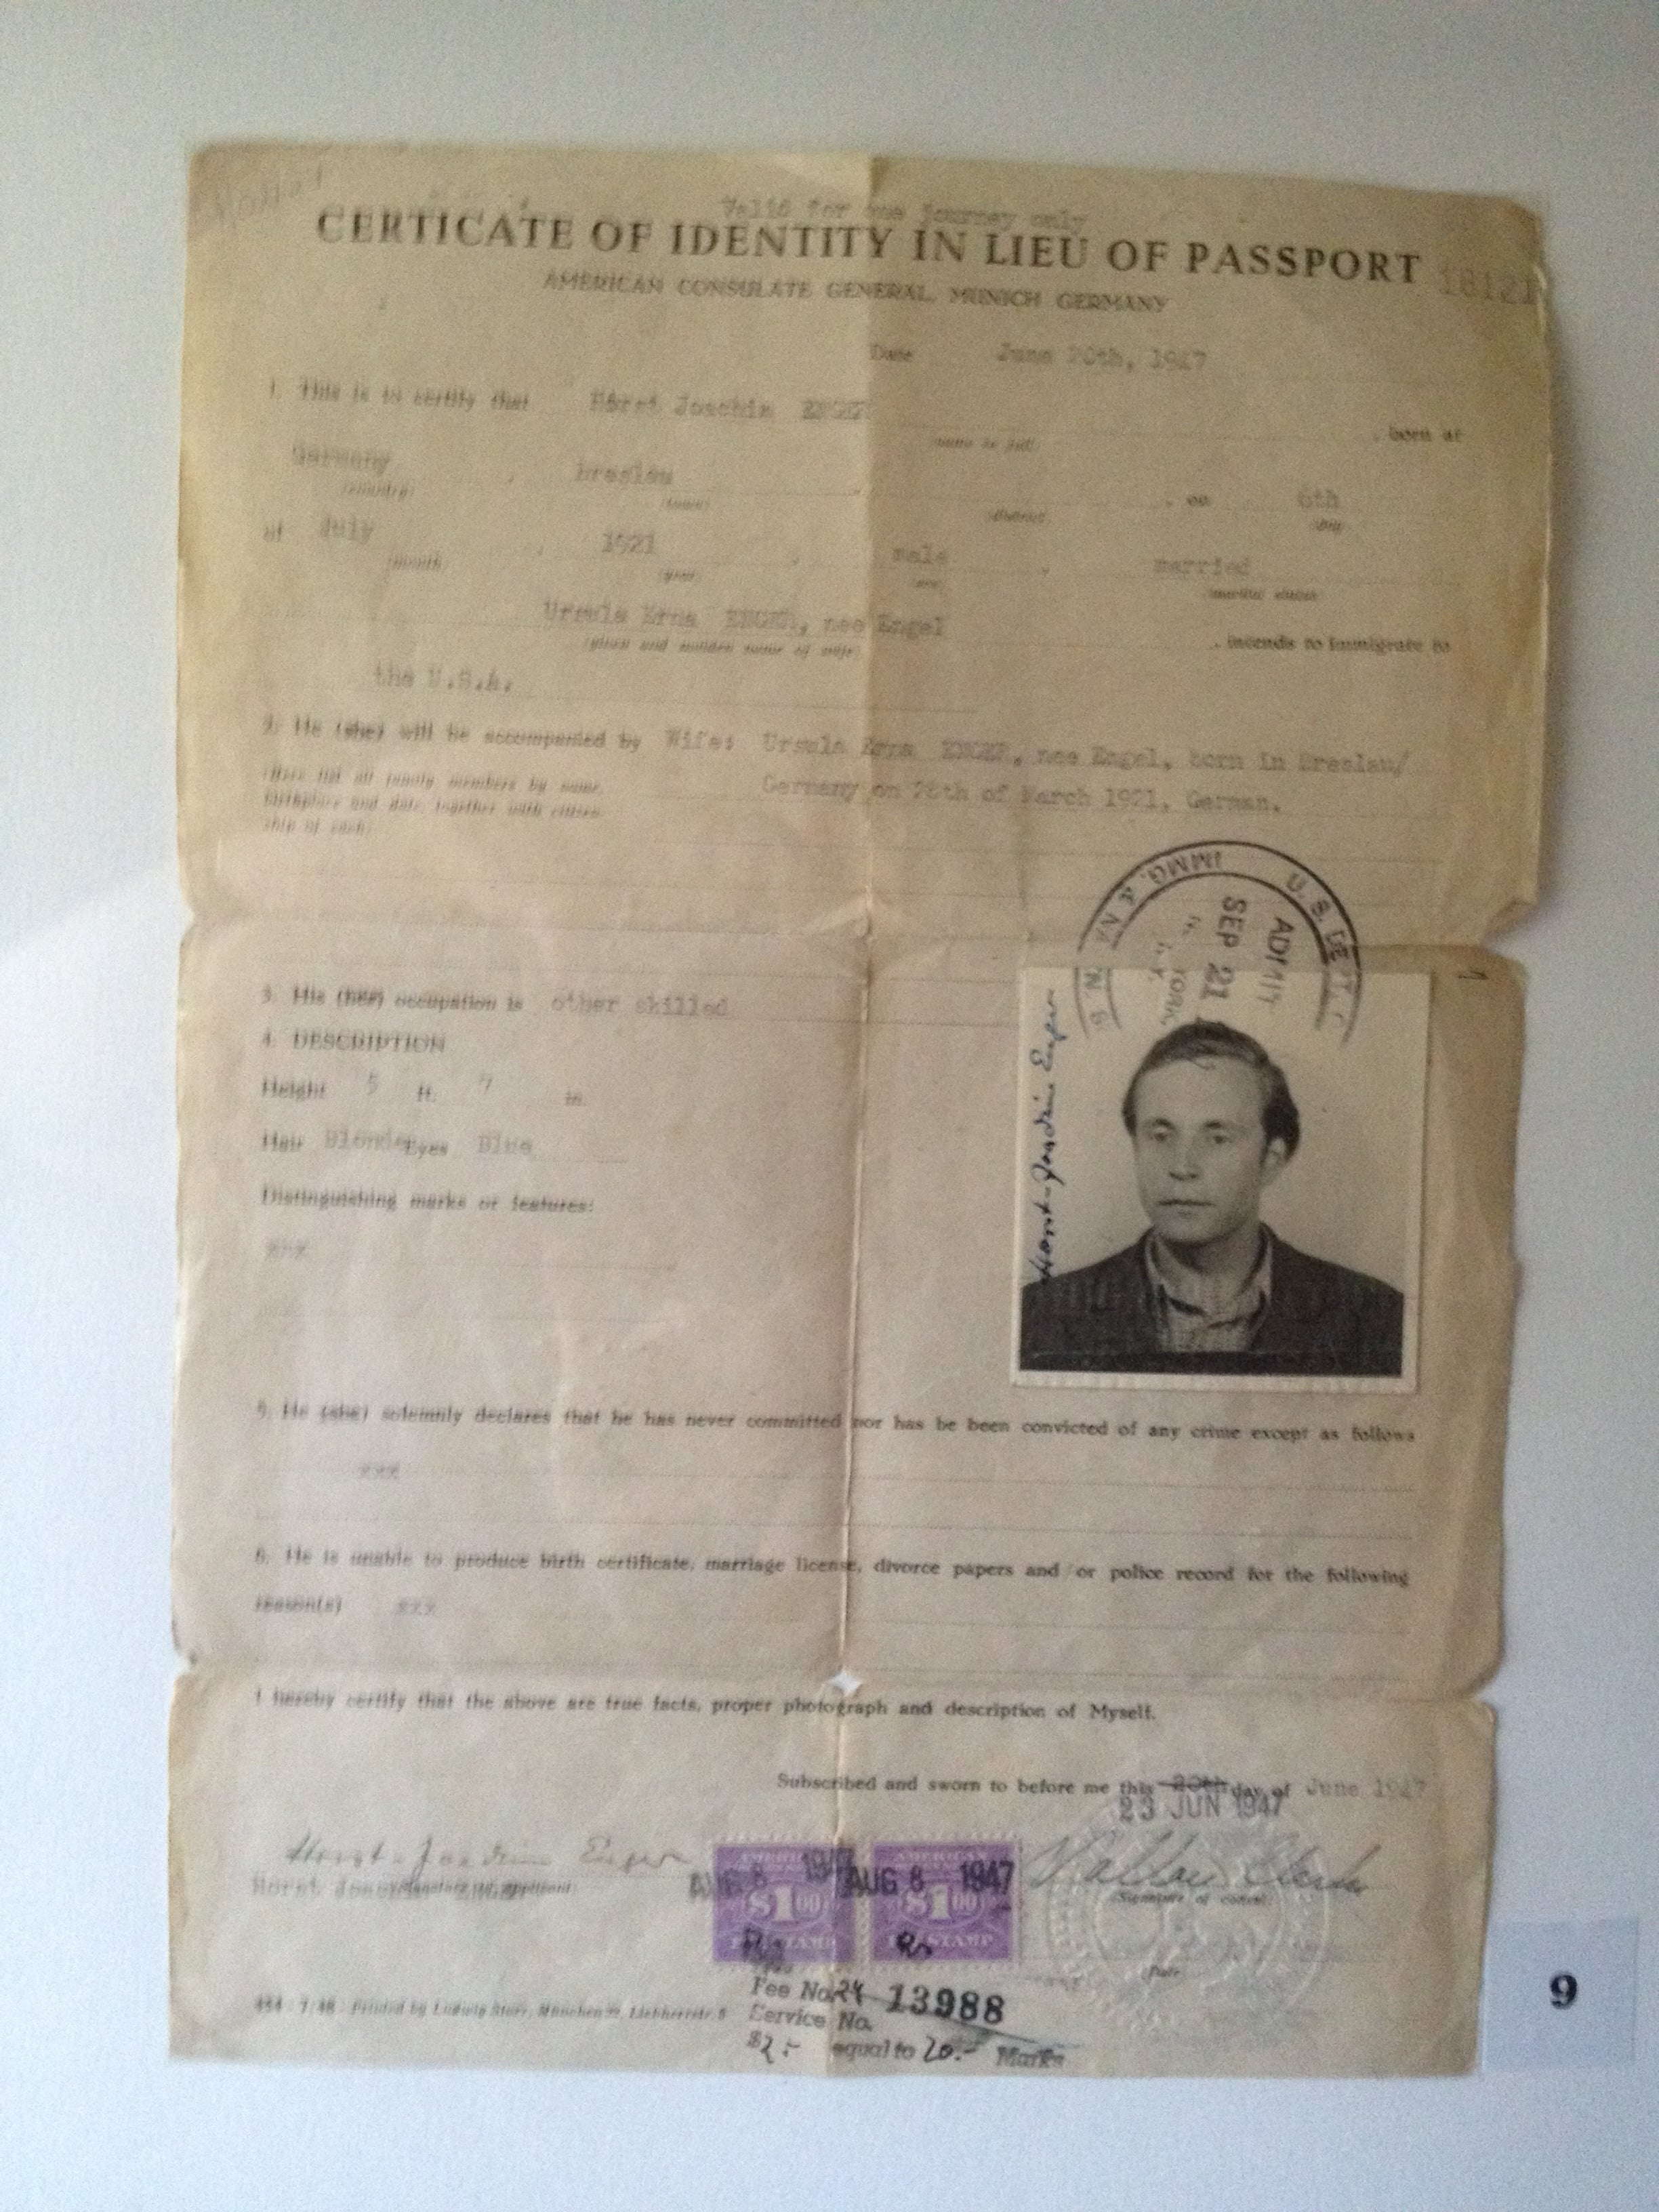 My father's immigration certificate, from entering the U.S.